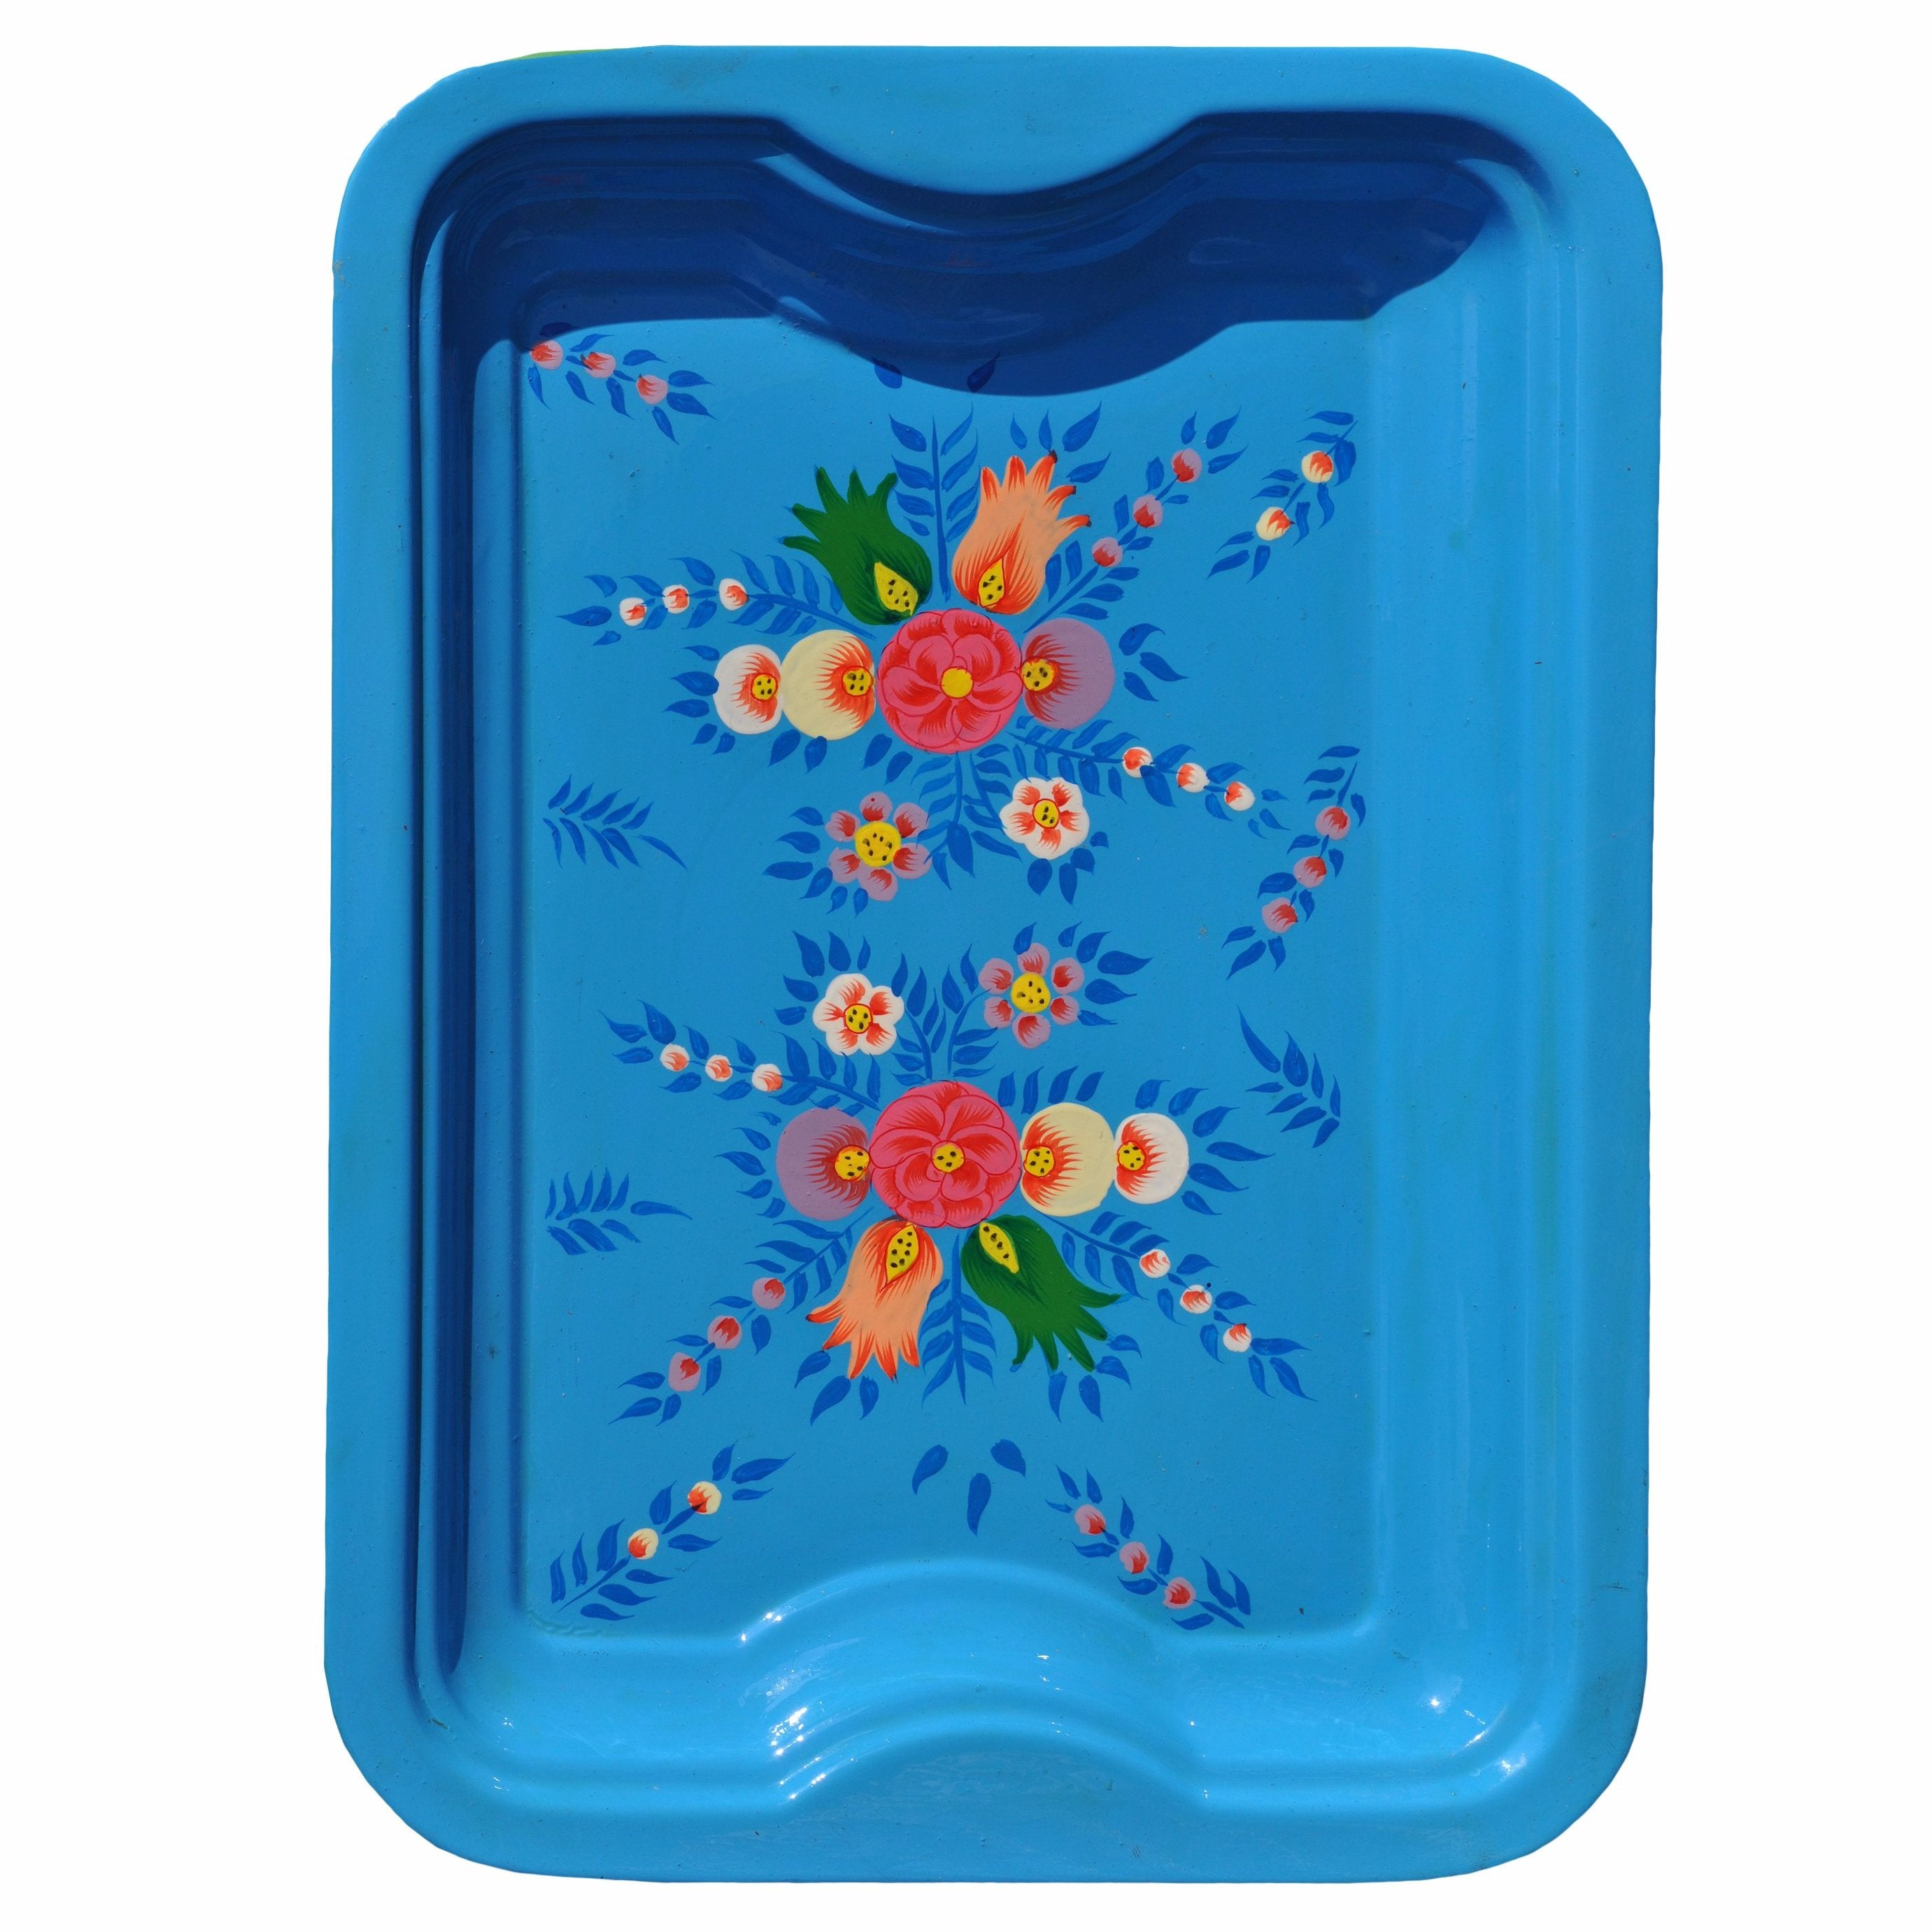 Bright Blue Floral Enamelware Rectangular Tray by Jasmine White on OOSTOR.com